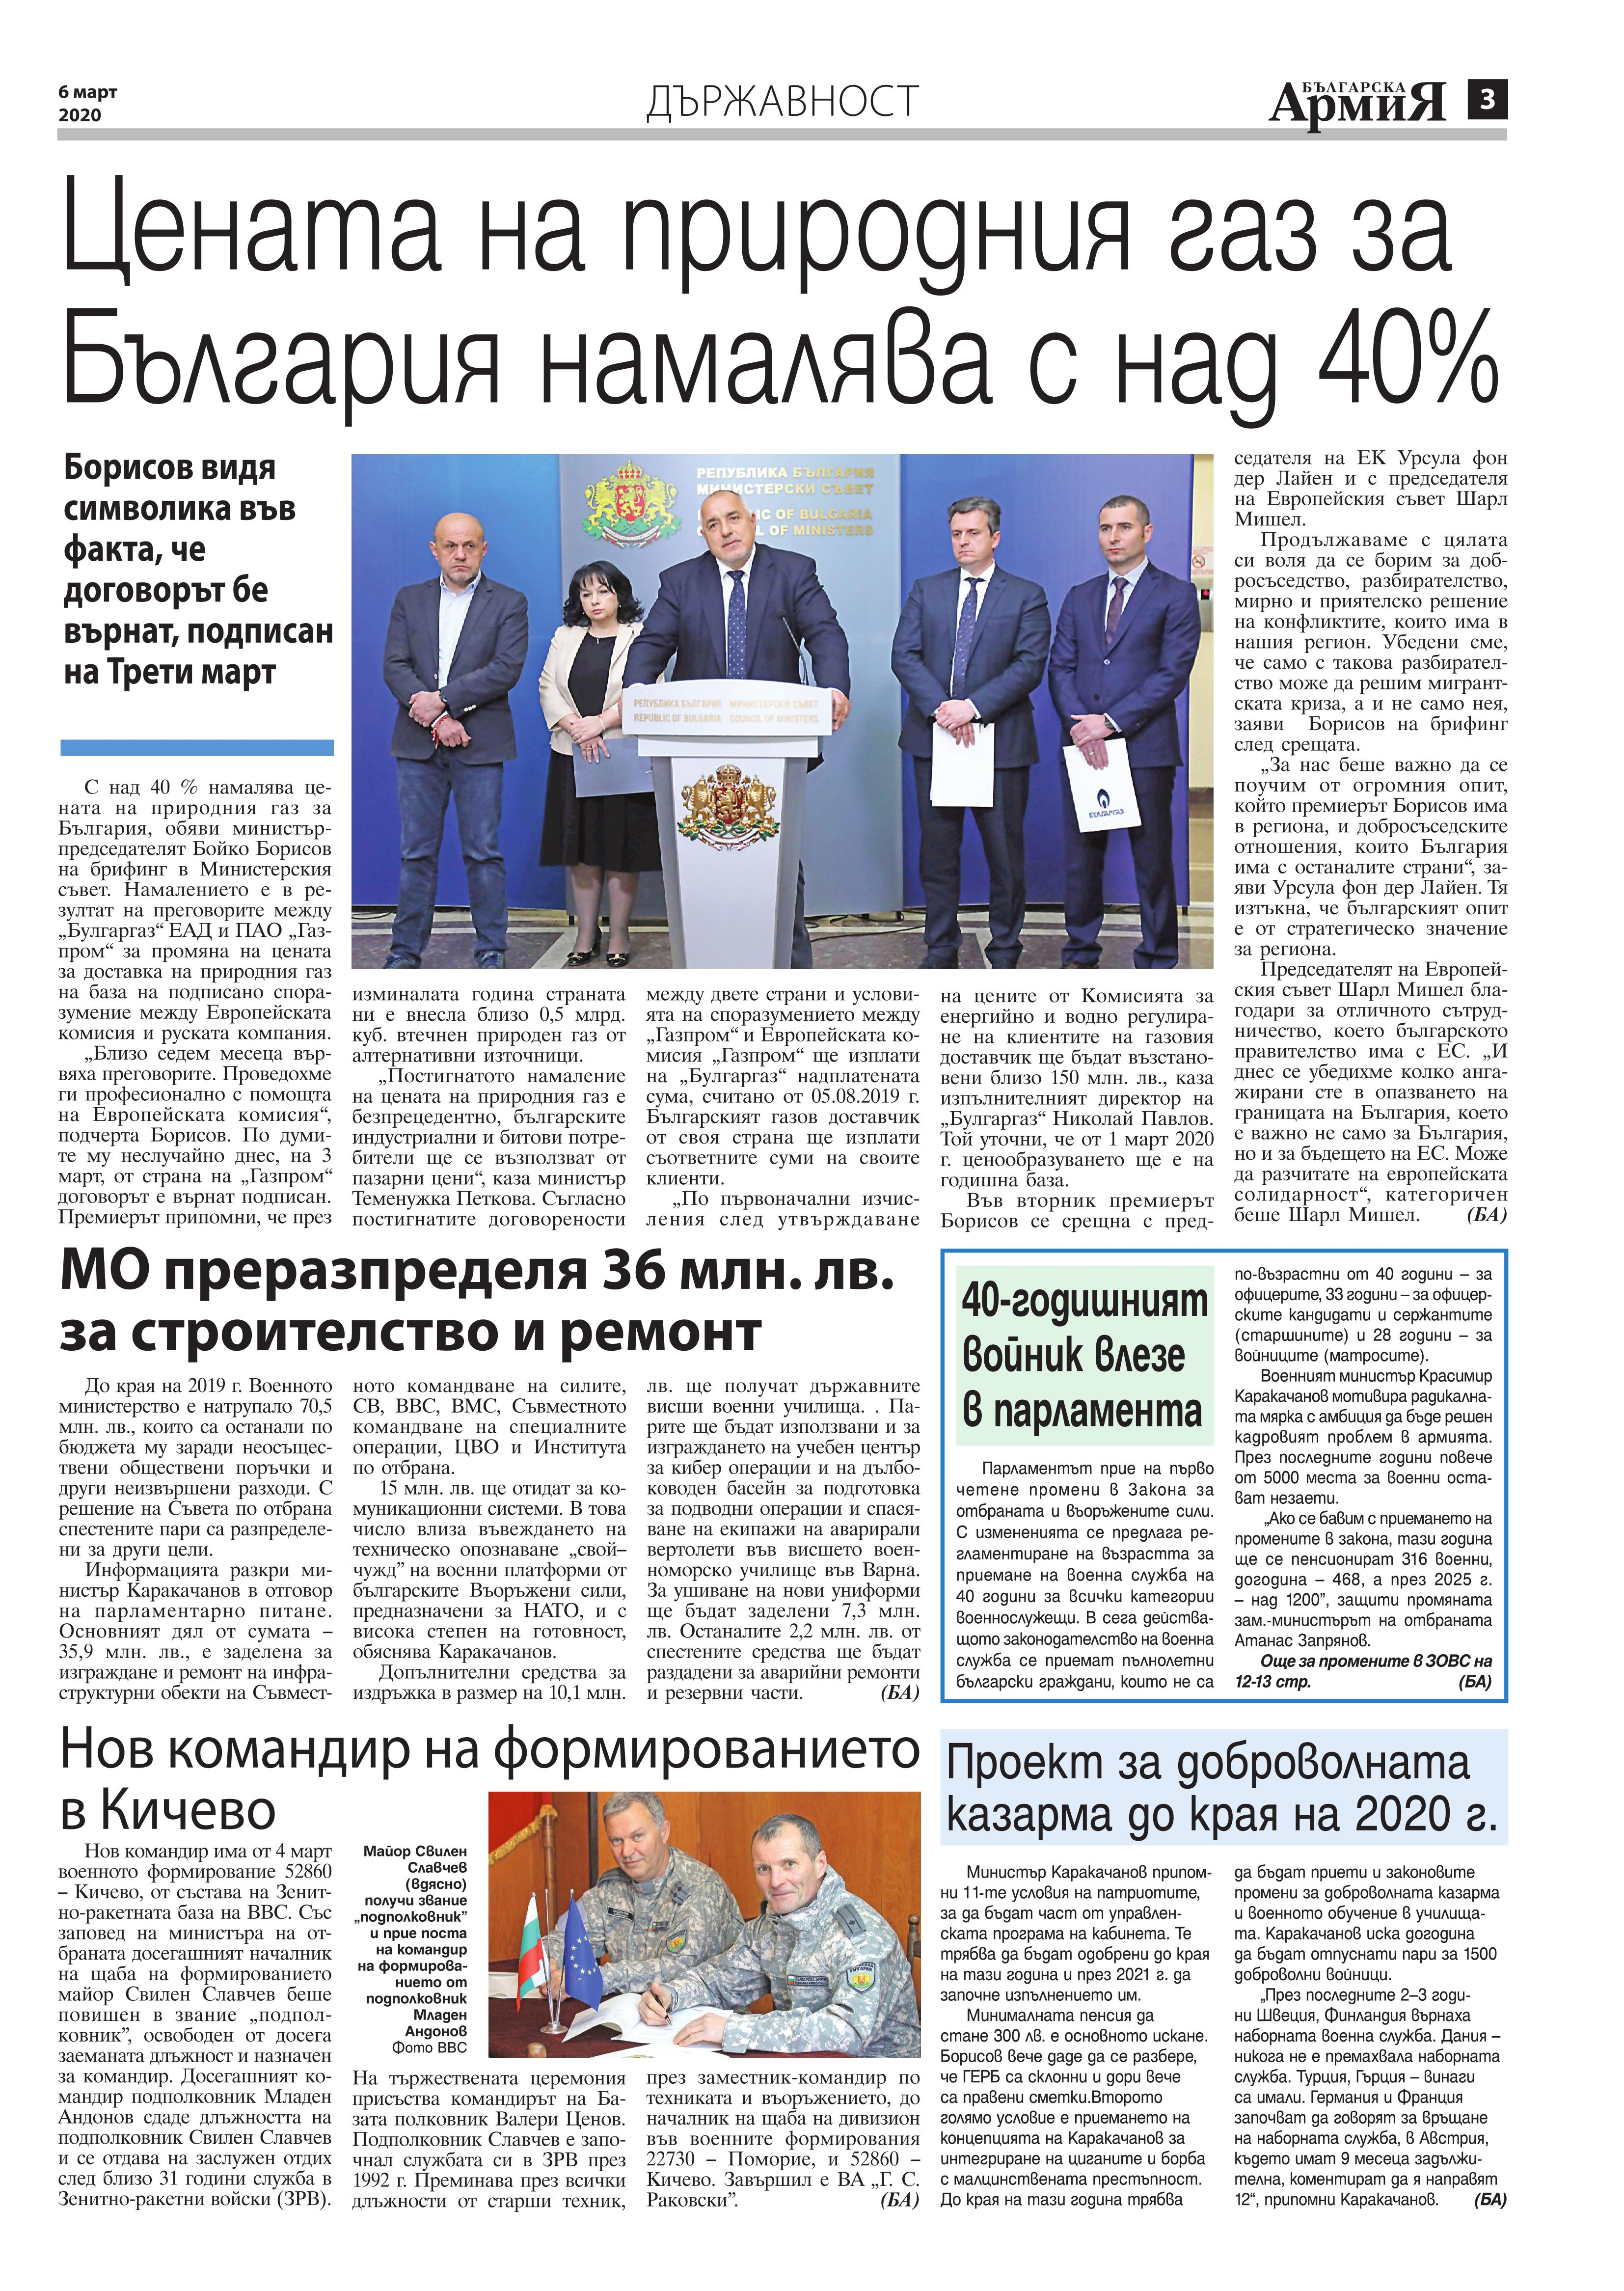 https://www.armymedia.bg/wp-content/uploads/2015/06/03.page1_-126.jpg